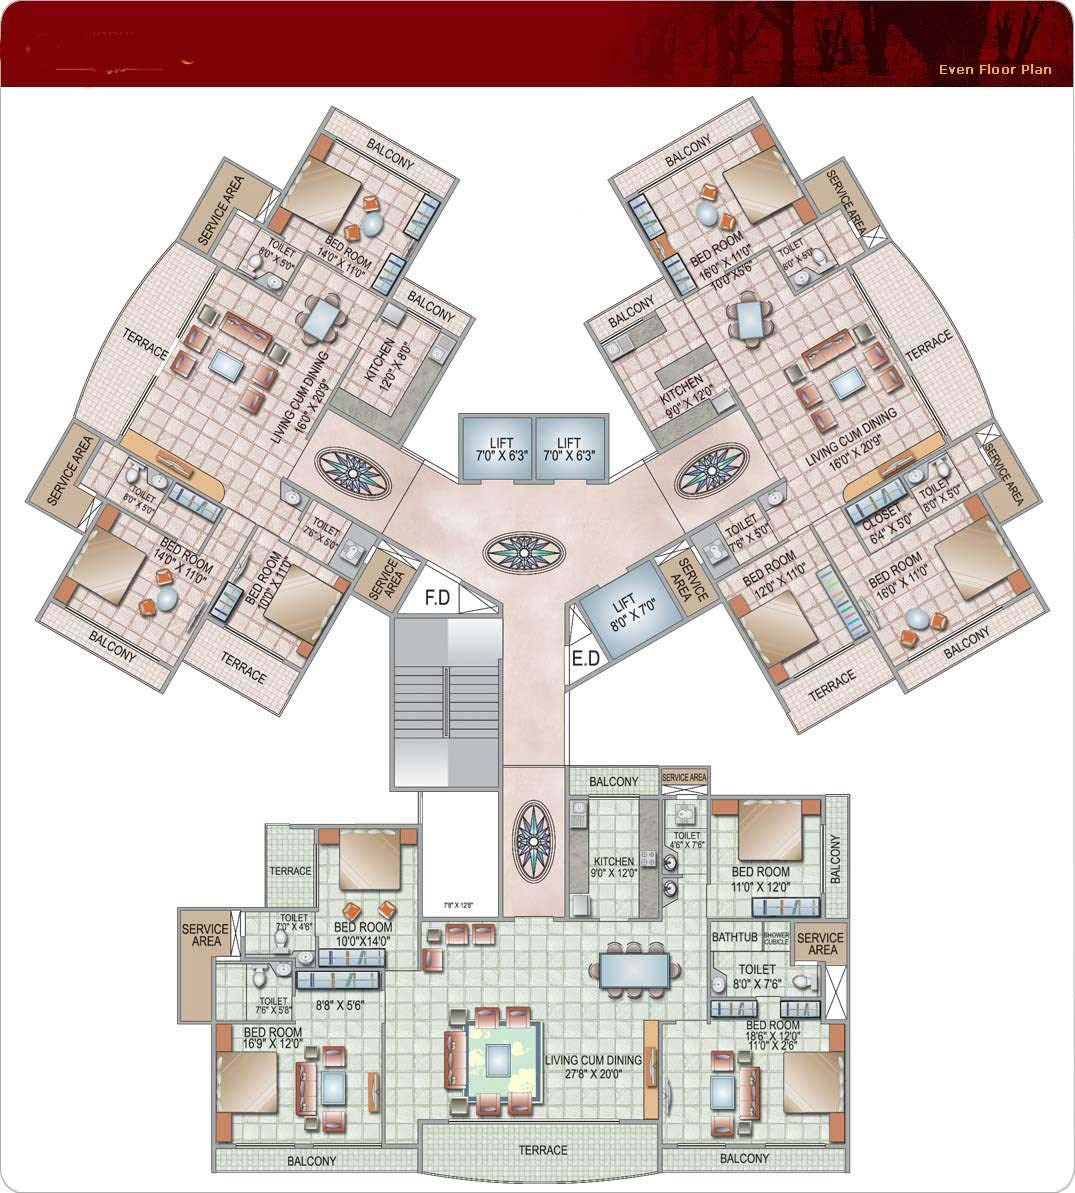 Siddhi Grandeur Even Floor Plan